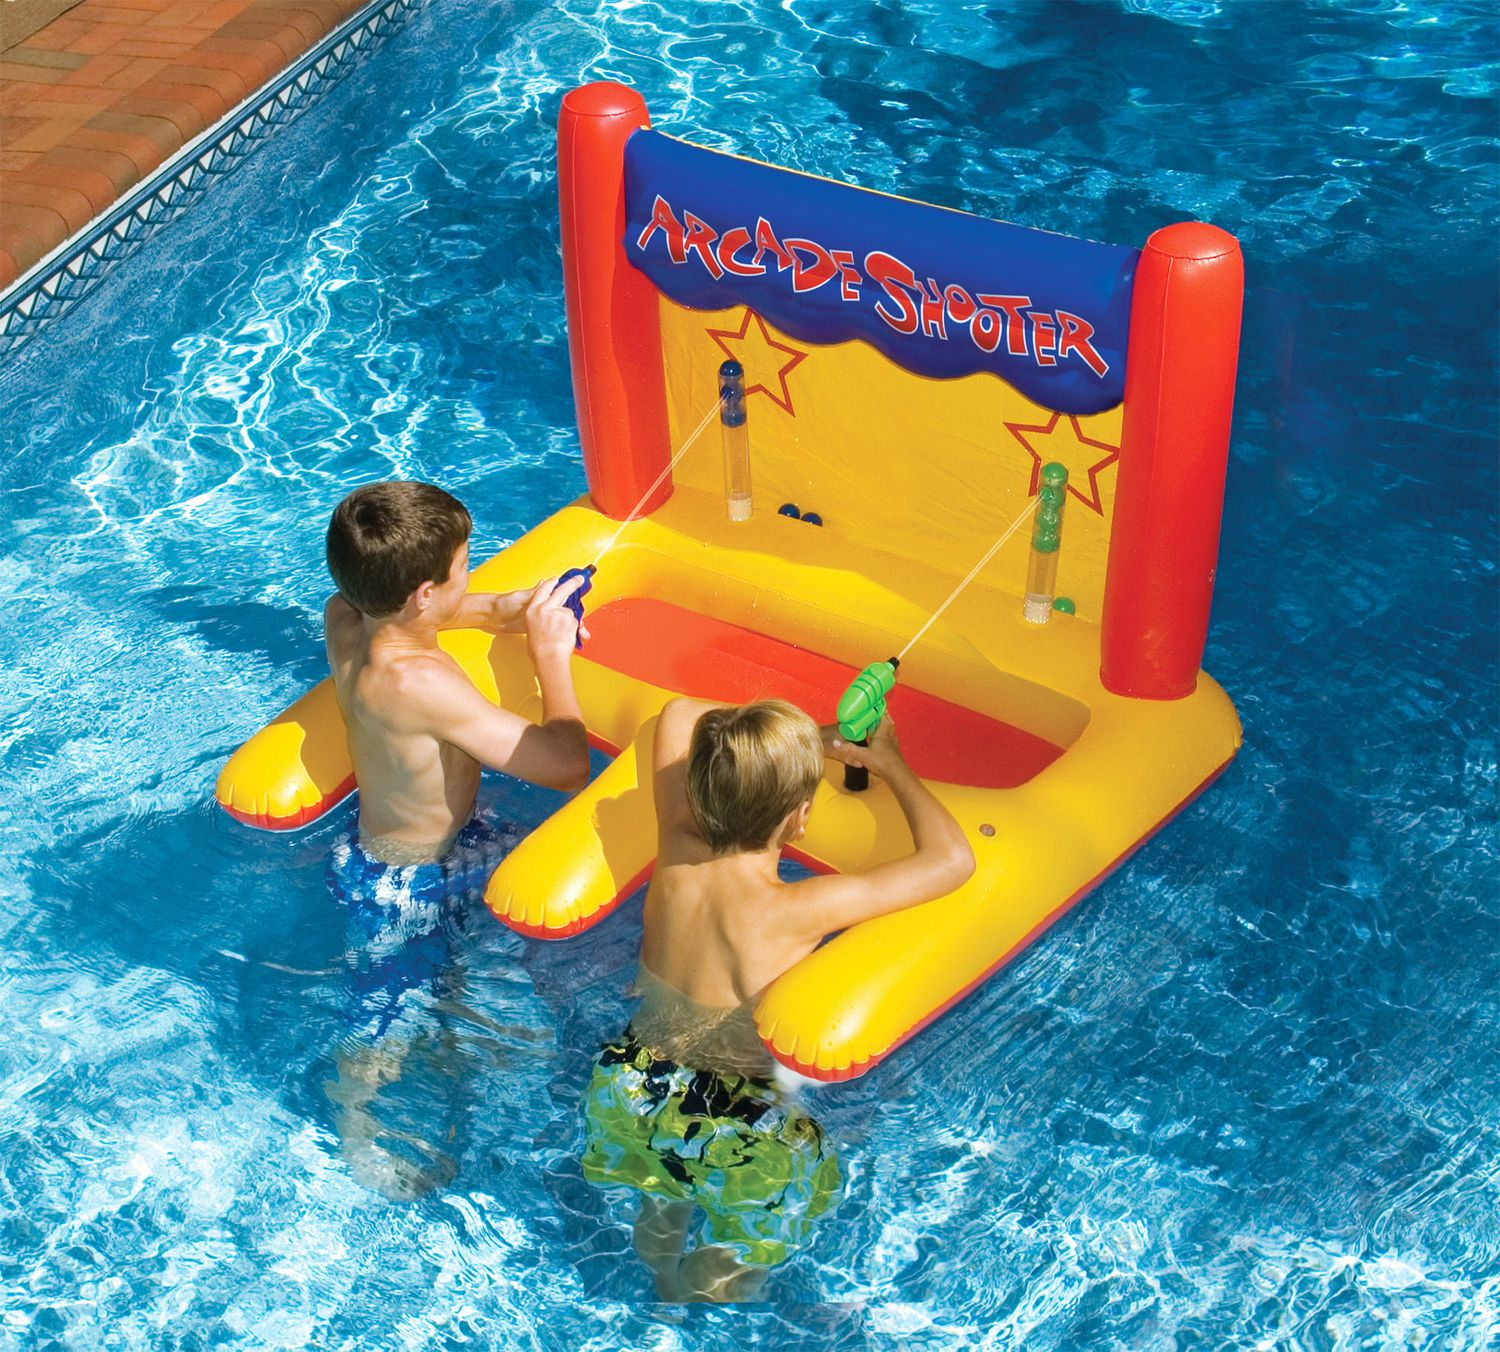 Swimline Dual Arcade Shooter Inflatable Pool Toy